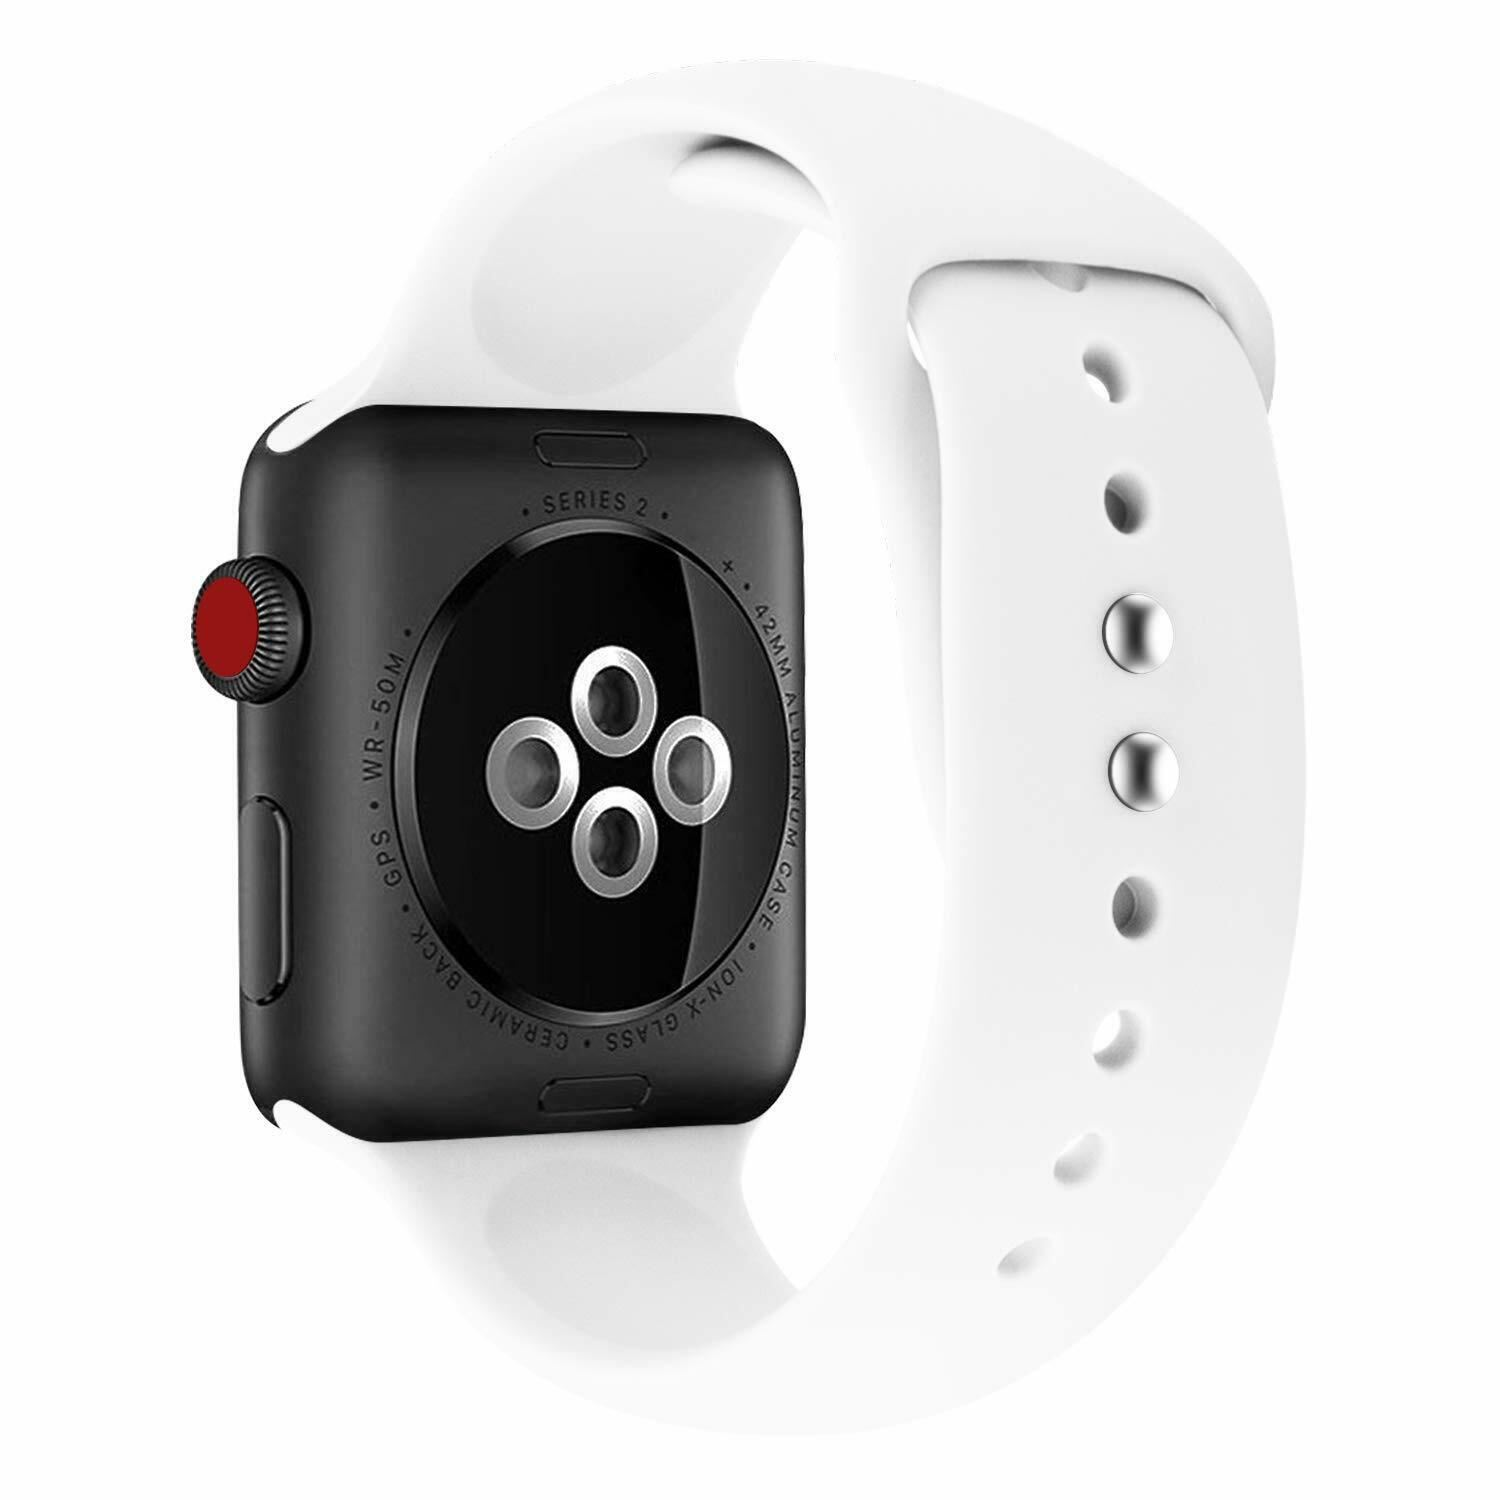 Strap-For-Apple-Watch-Silicone-Comfortable-Durable-Waterproof-Band thumbnail 39